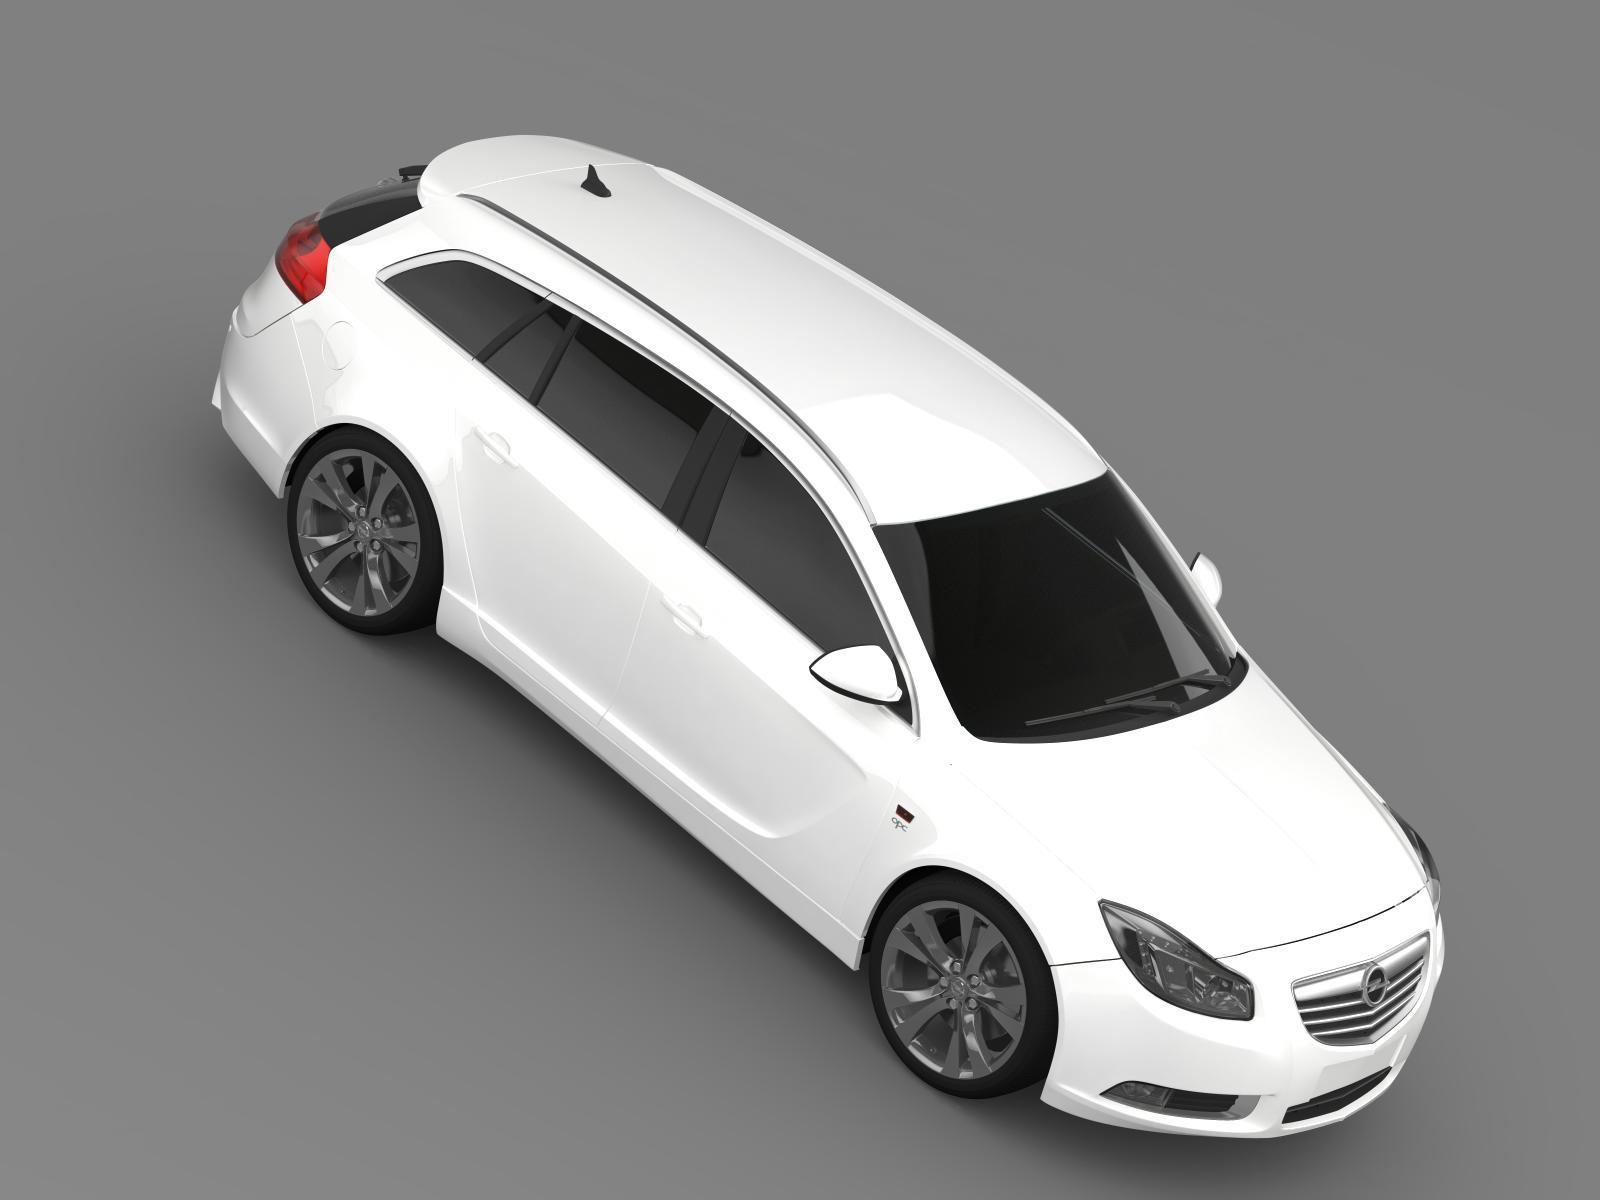 opel insignia opc line sports tourer by creator 3d 3docean. Black Bedroom Furniture Sets. Home Design Ideas